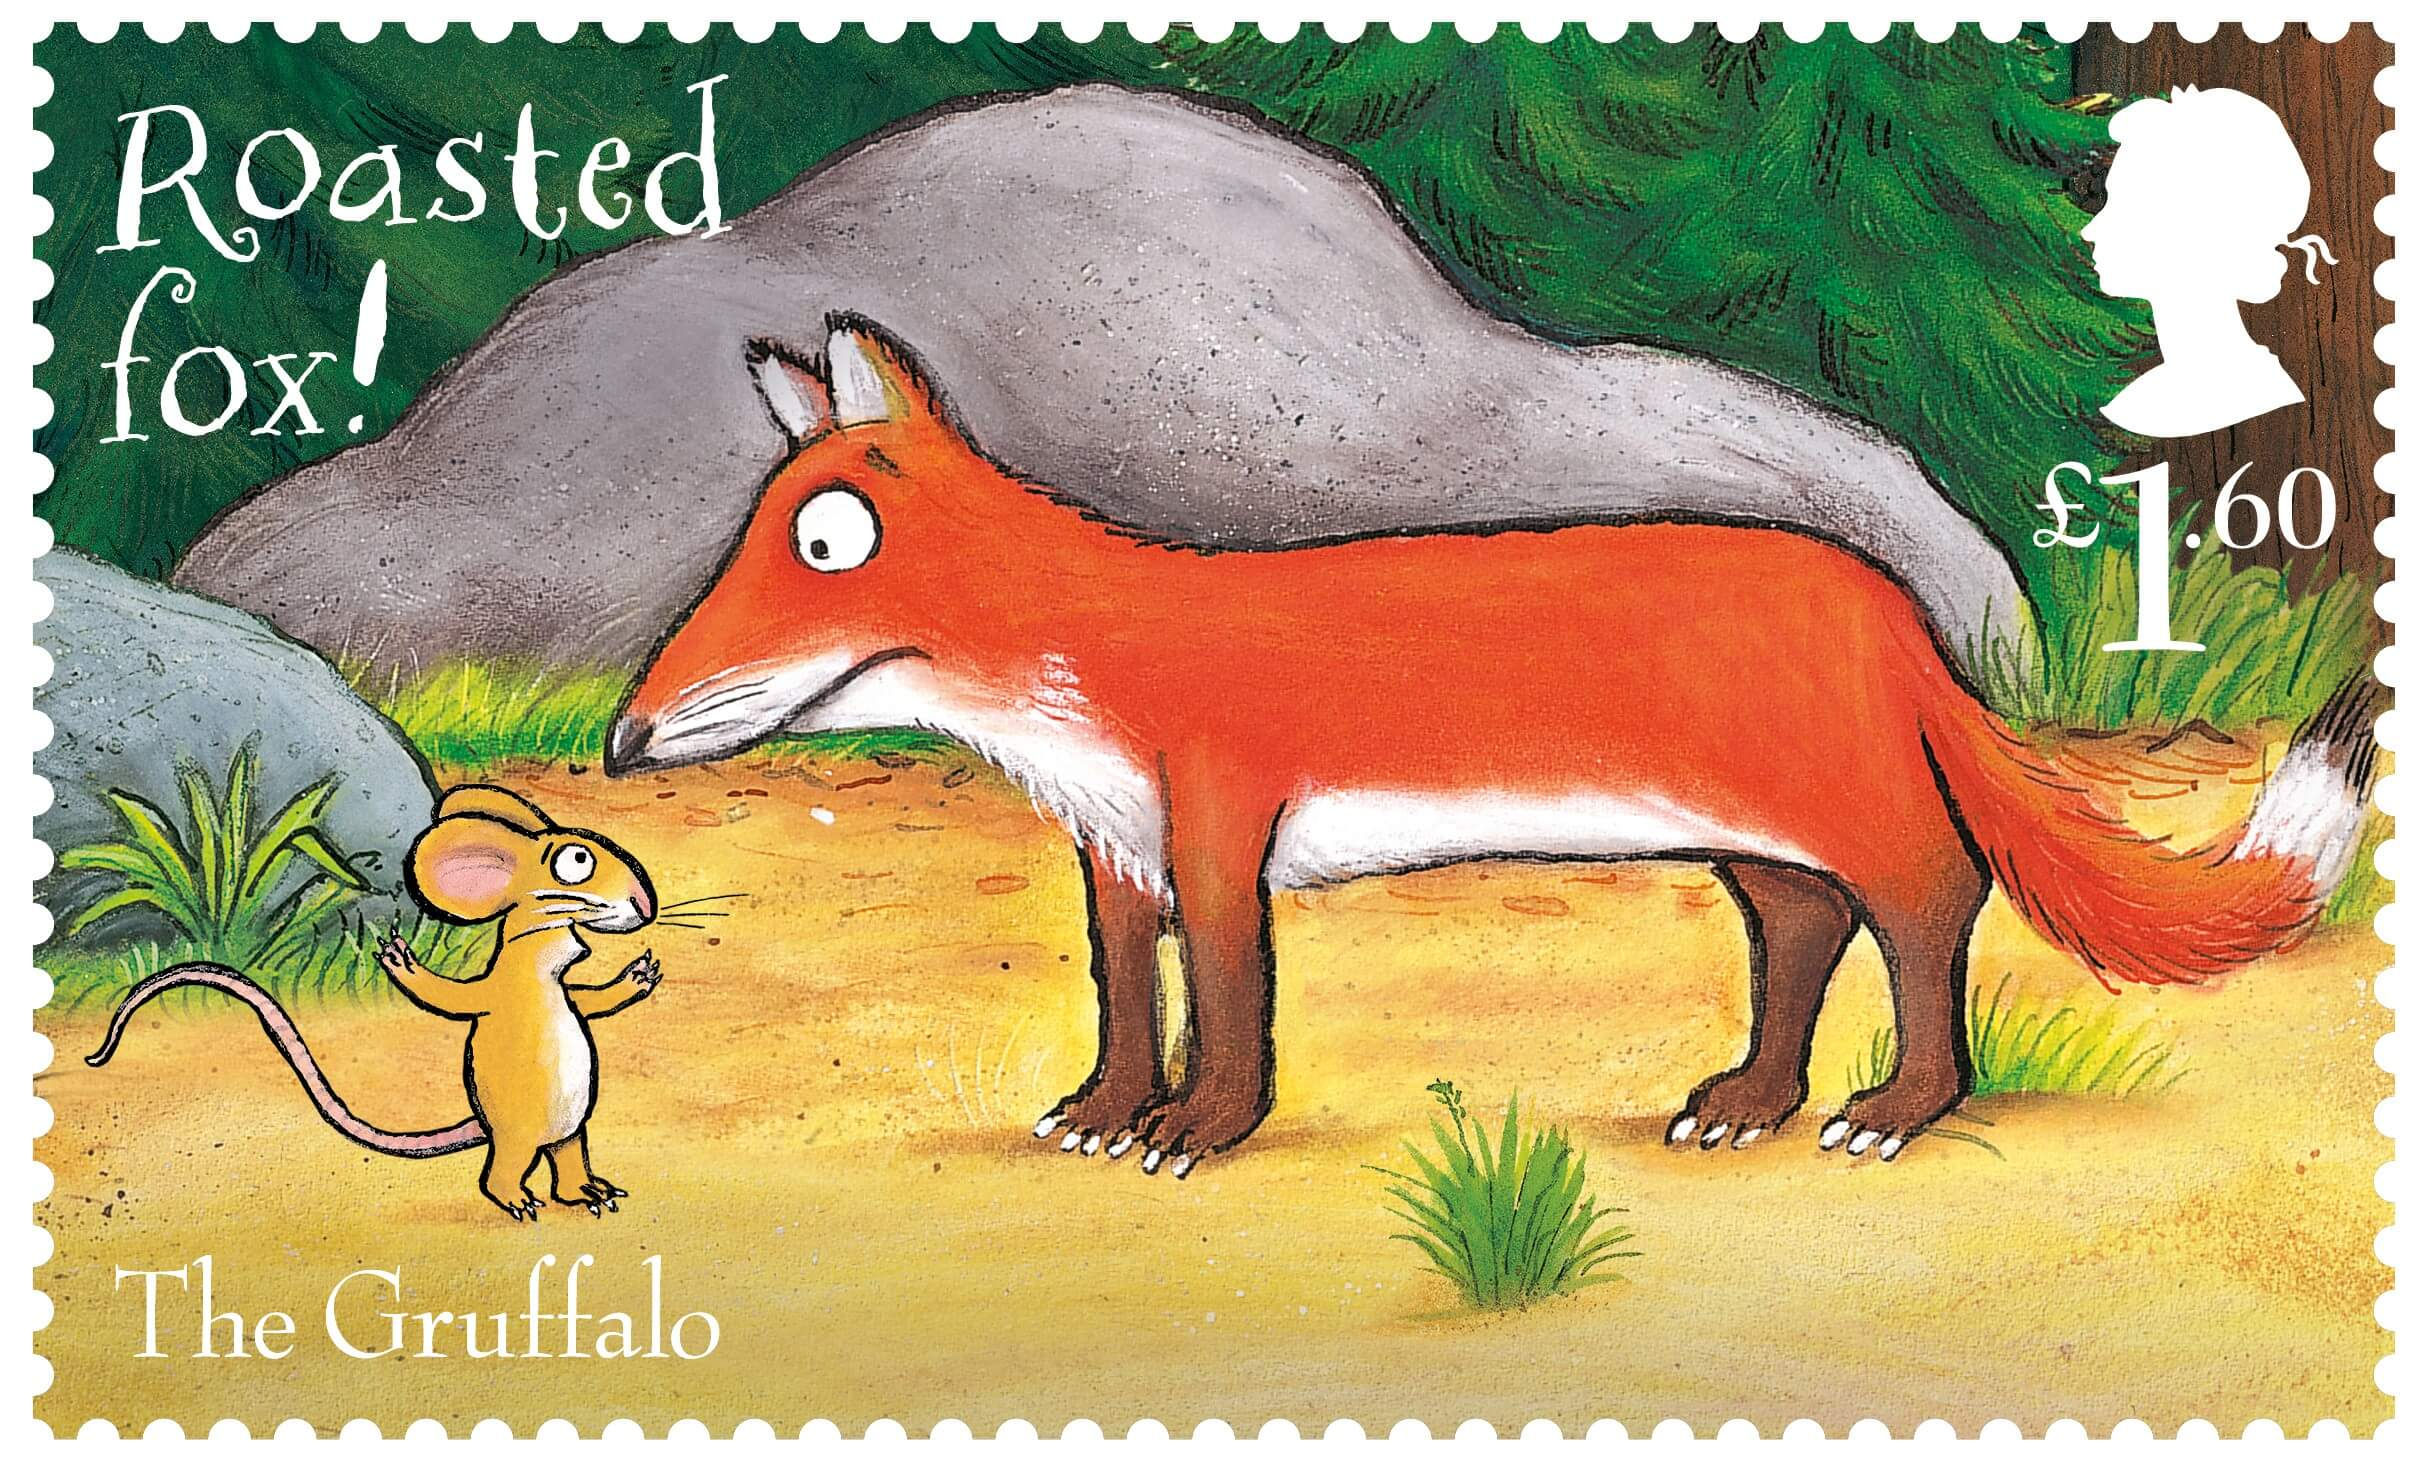 www.collectgbstamps.co.uk